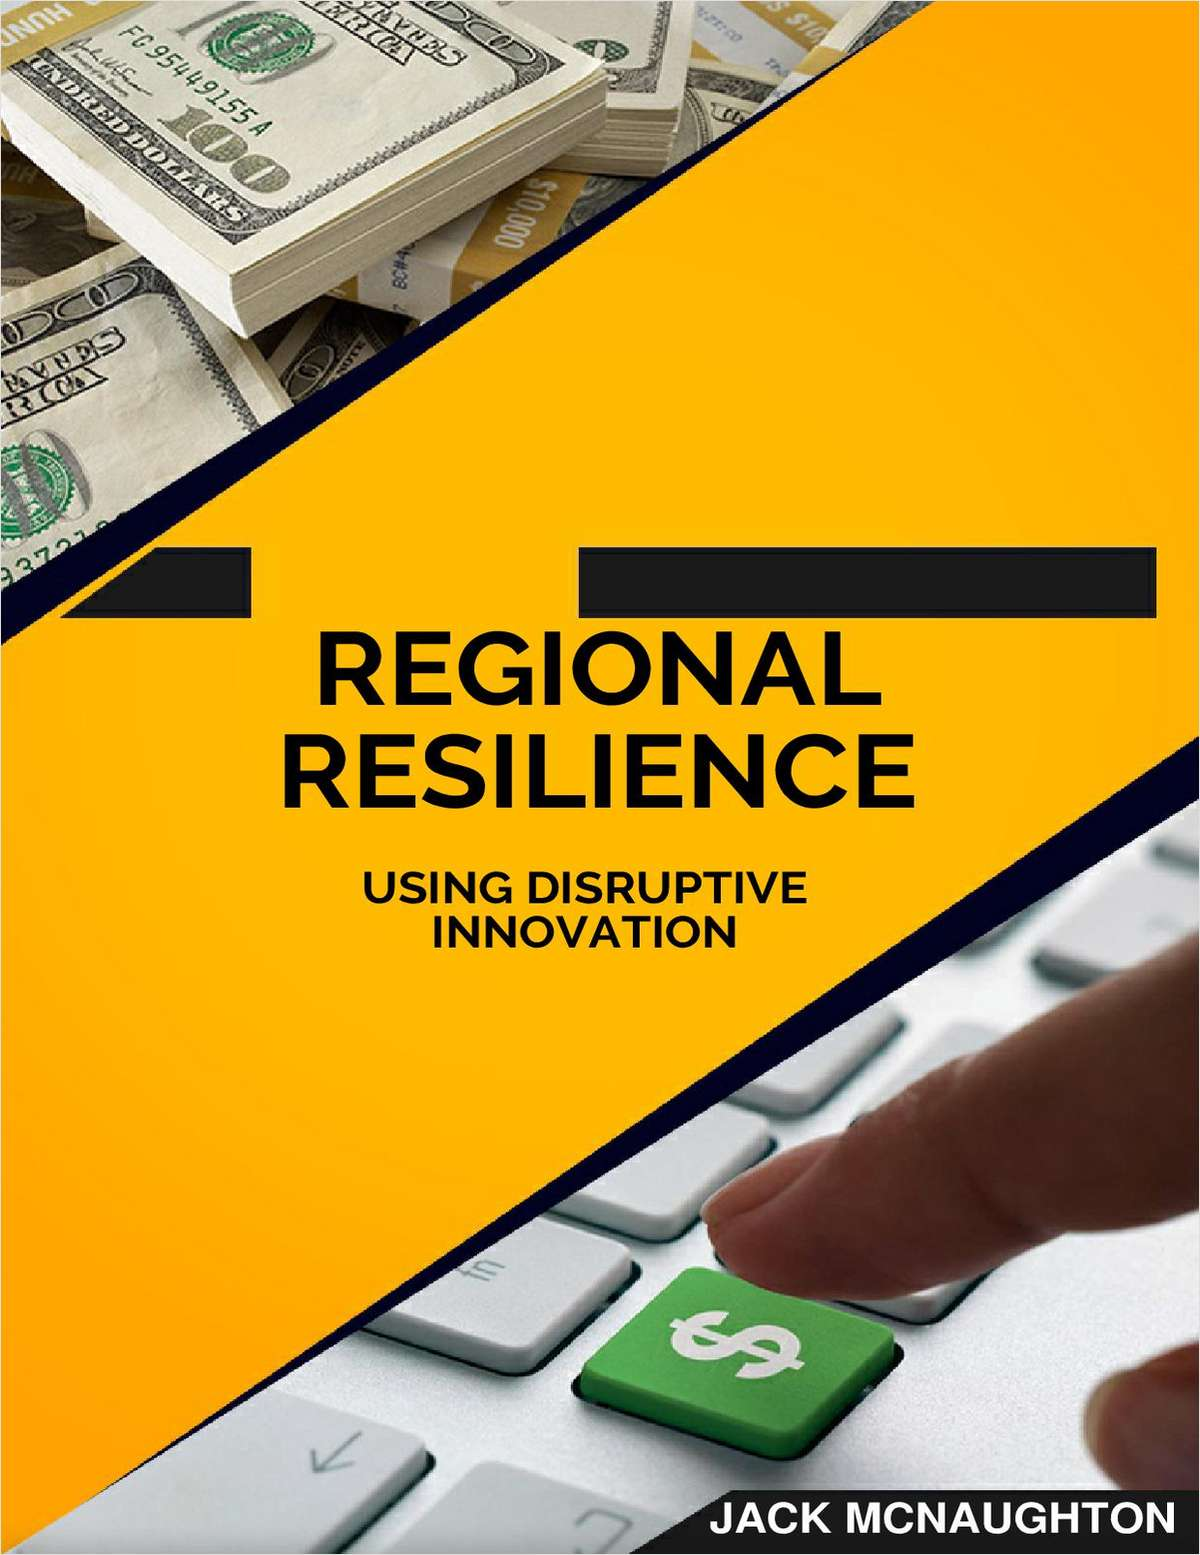 Regional Resilience - Using Disruptive Innovation